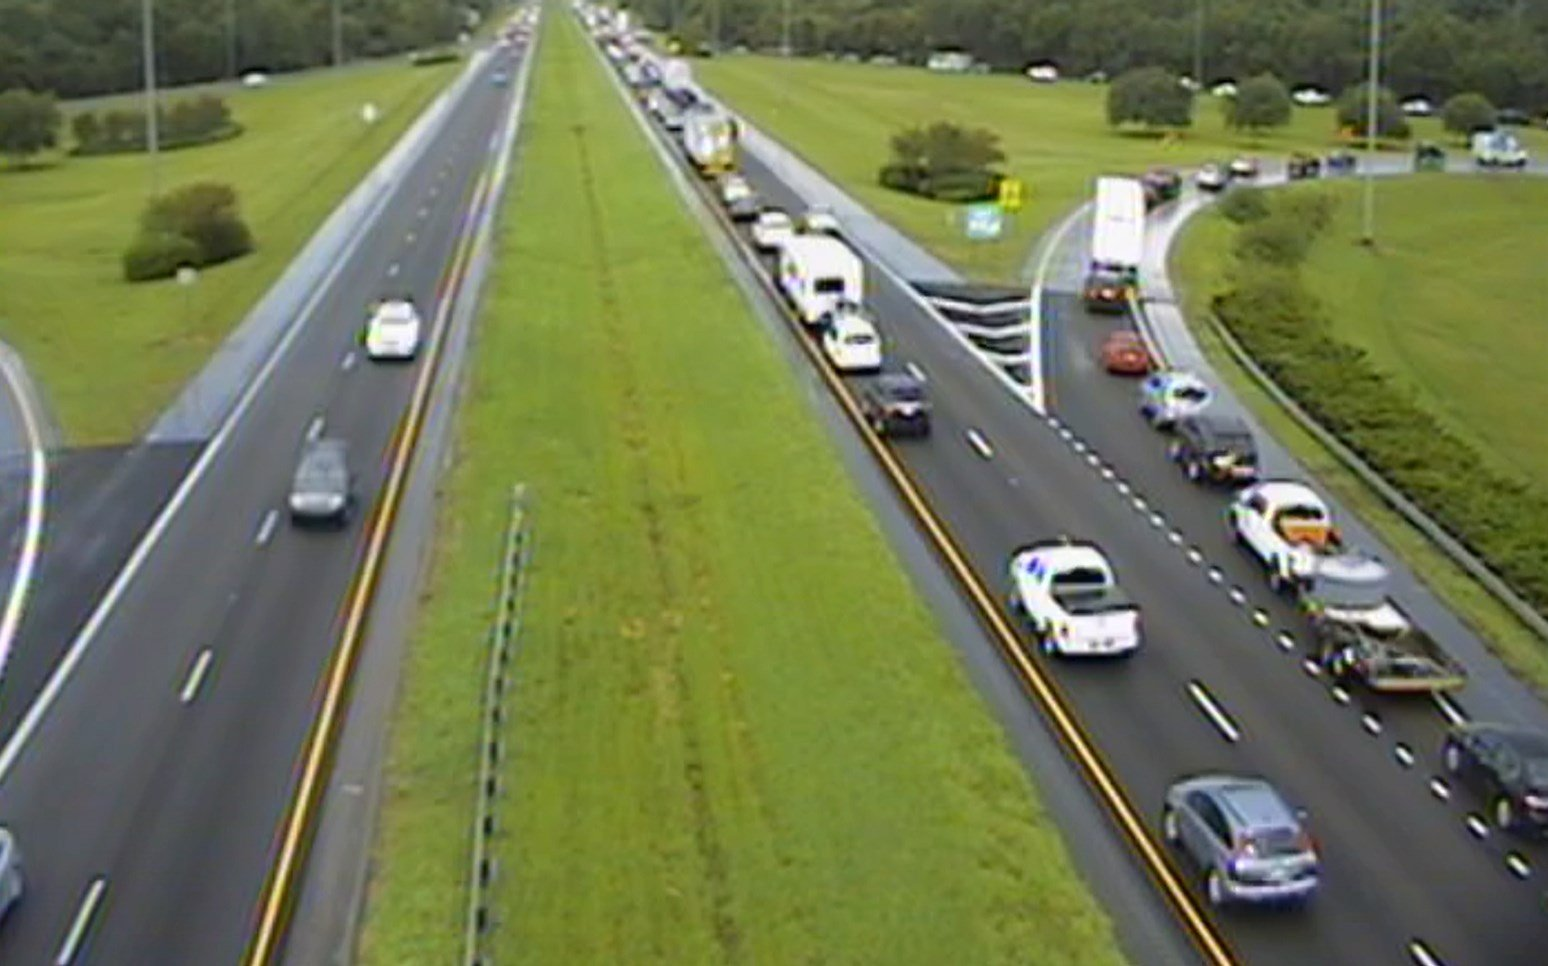 Alabama baldwin county daphne - A Fatal Accident On Westbound Interstate 10 In Baldwin County Resulted In A Miles Long